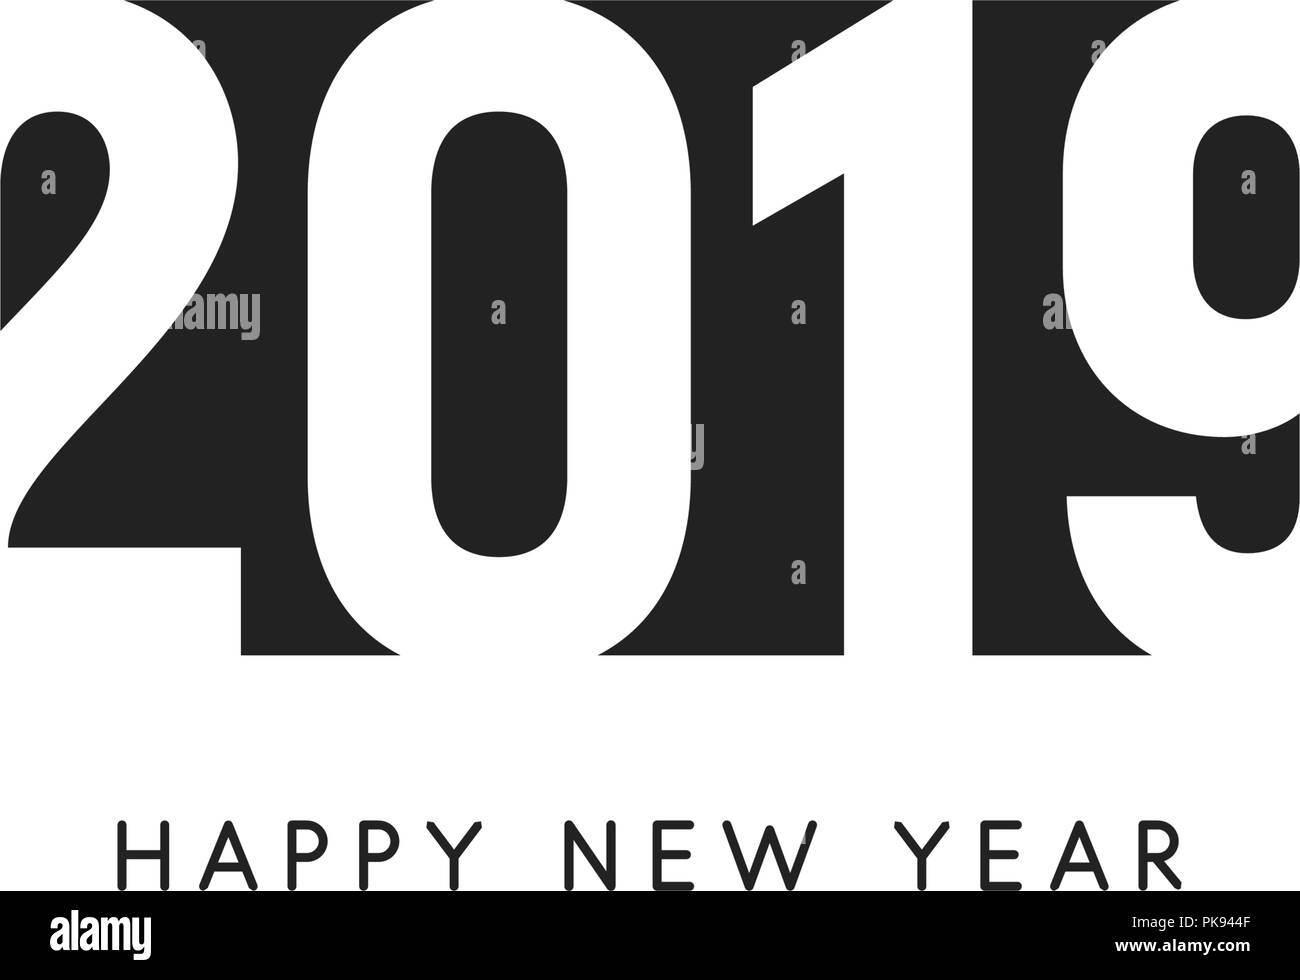 happy new 2019 year sign black negative space vector logo